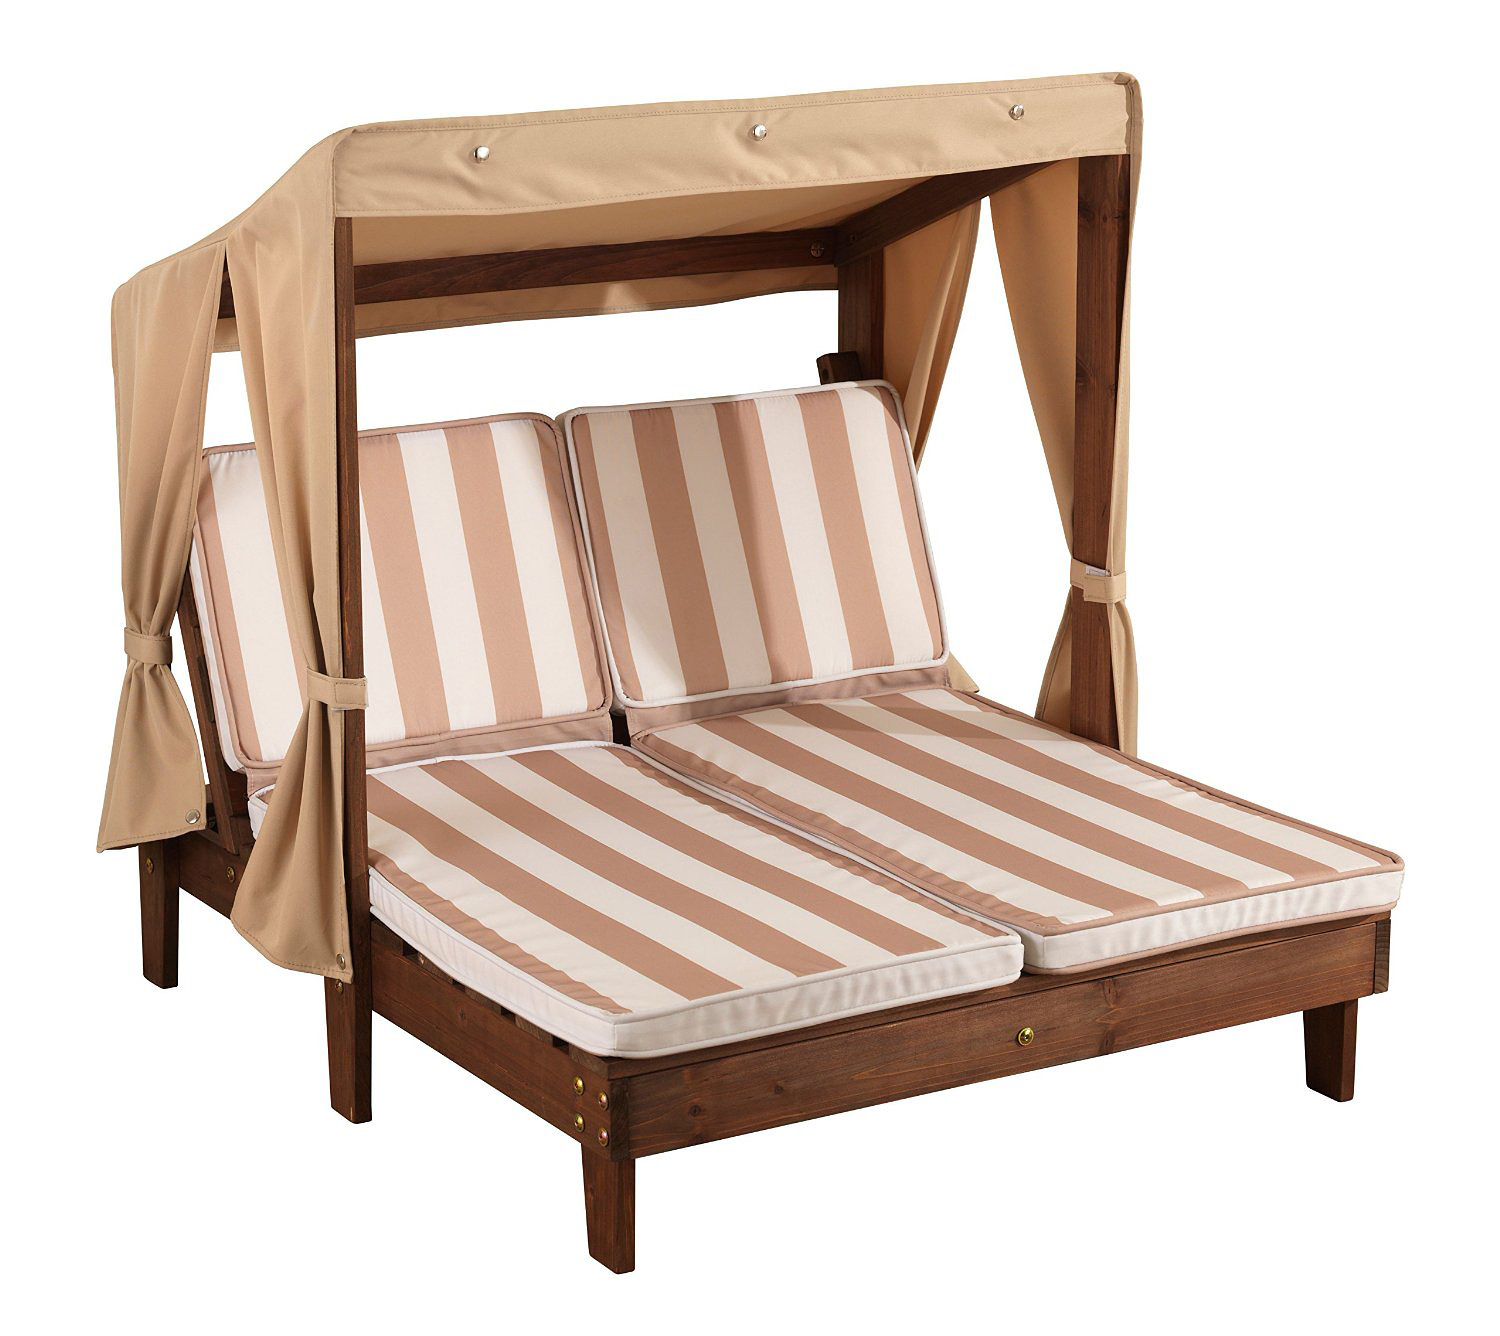 Children's Lounge Chair This Kids Double Lounge Chair By Kidkraft Will Be A Great